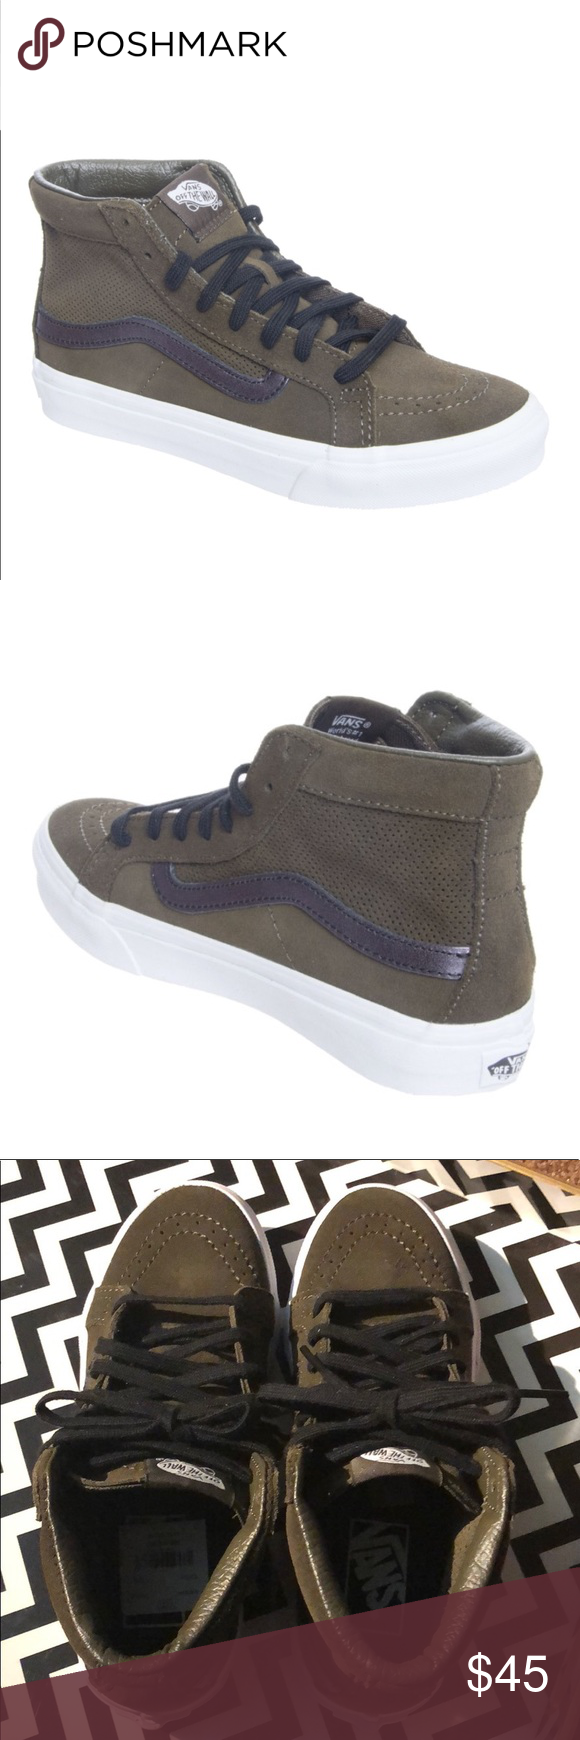 95a1625d43af6a VANS SK8 HI SLIM CUTOUT Perf Suede Tarmac True White Sizing  Women s 5 is a  Mens and Kids 3.5 Women s 5.5 is a Men s and Kids 4 Vans Shoes Sneakers